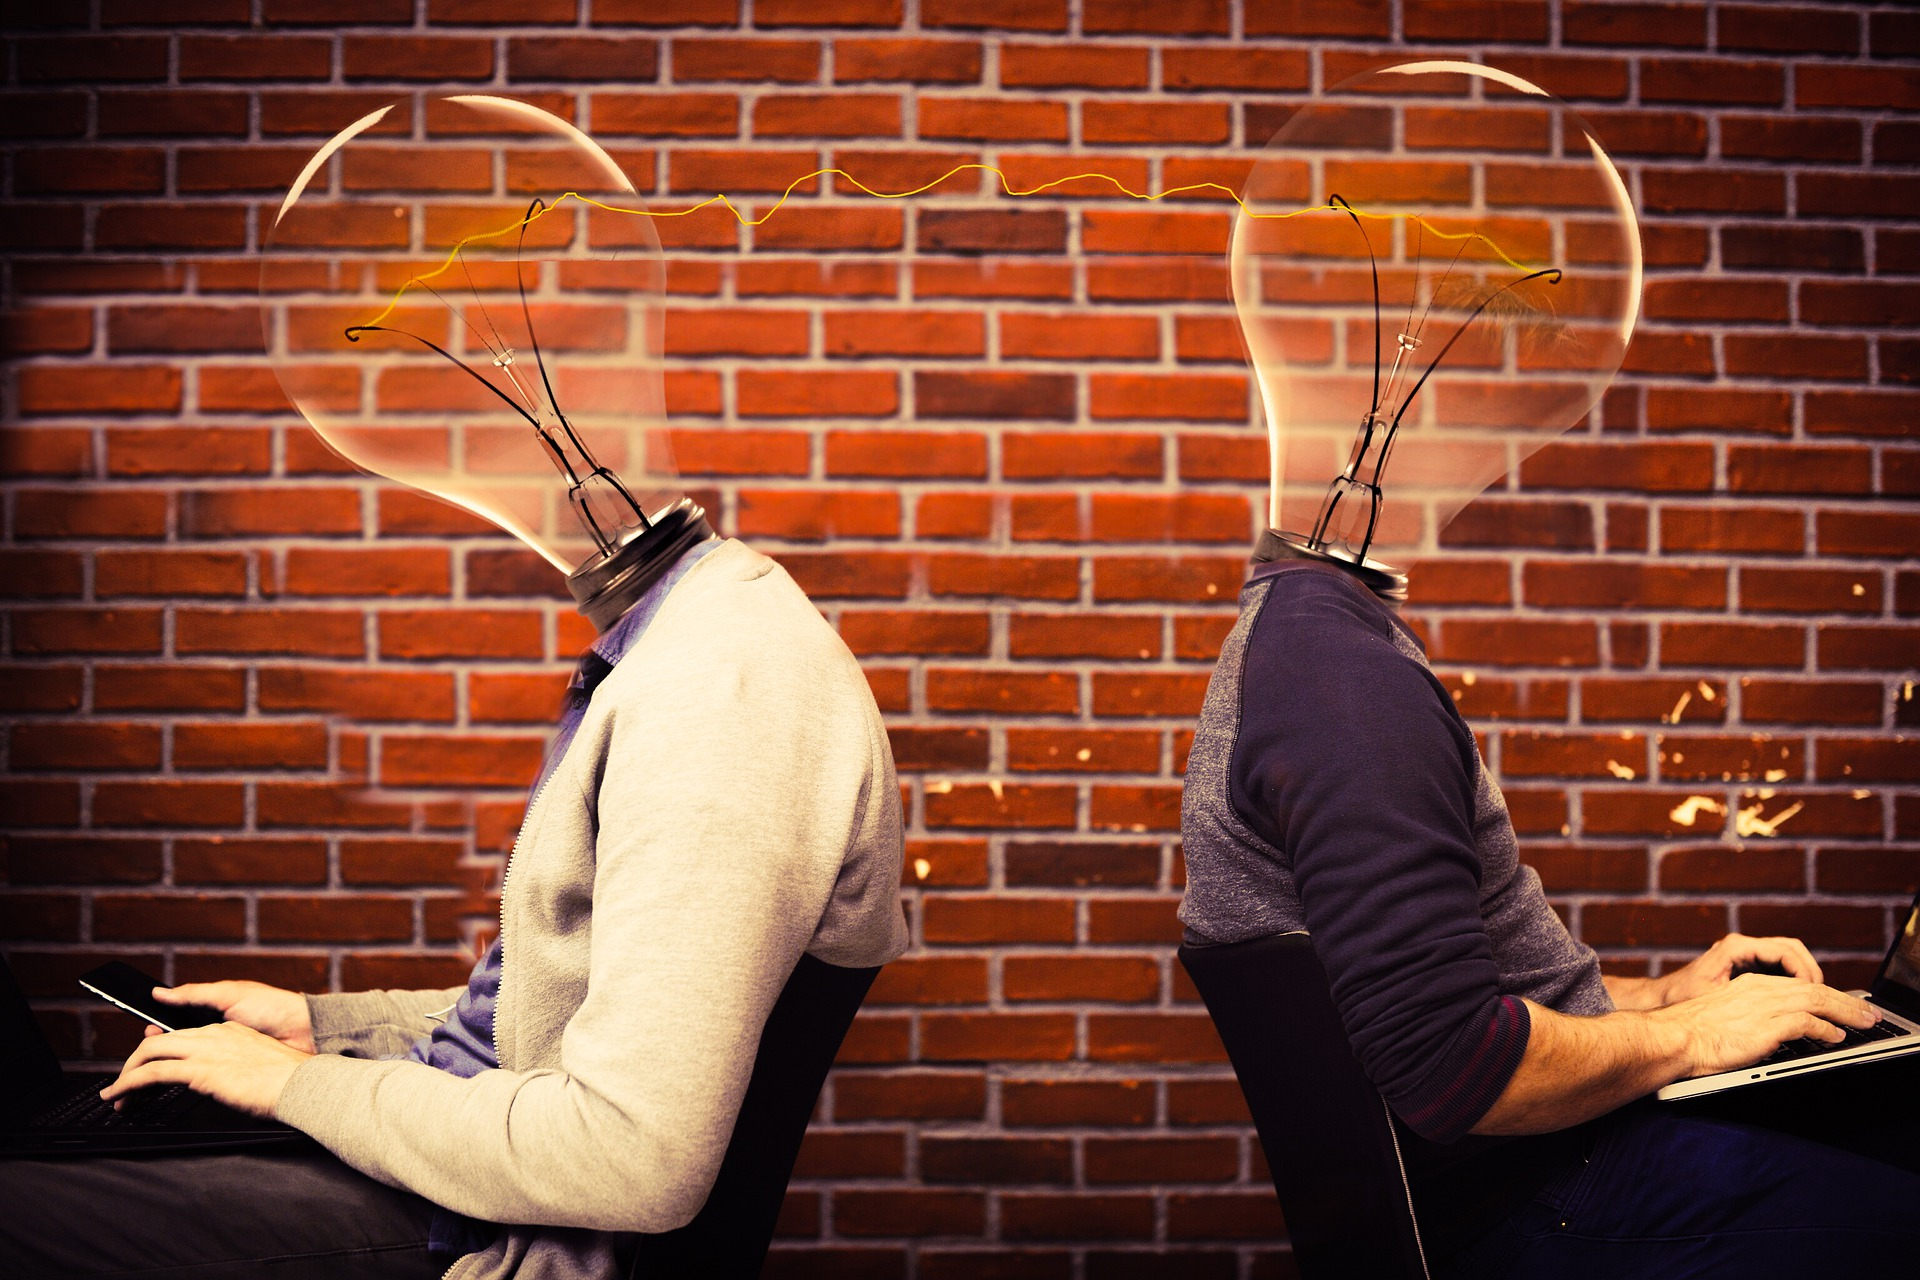 Two men with lightbulb heads sitting down facing away from each other.